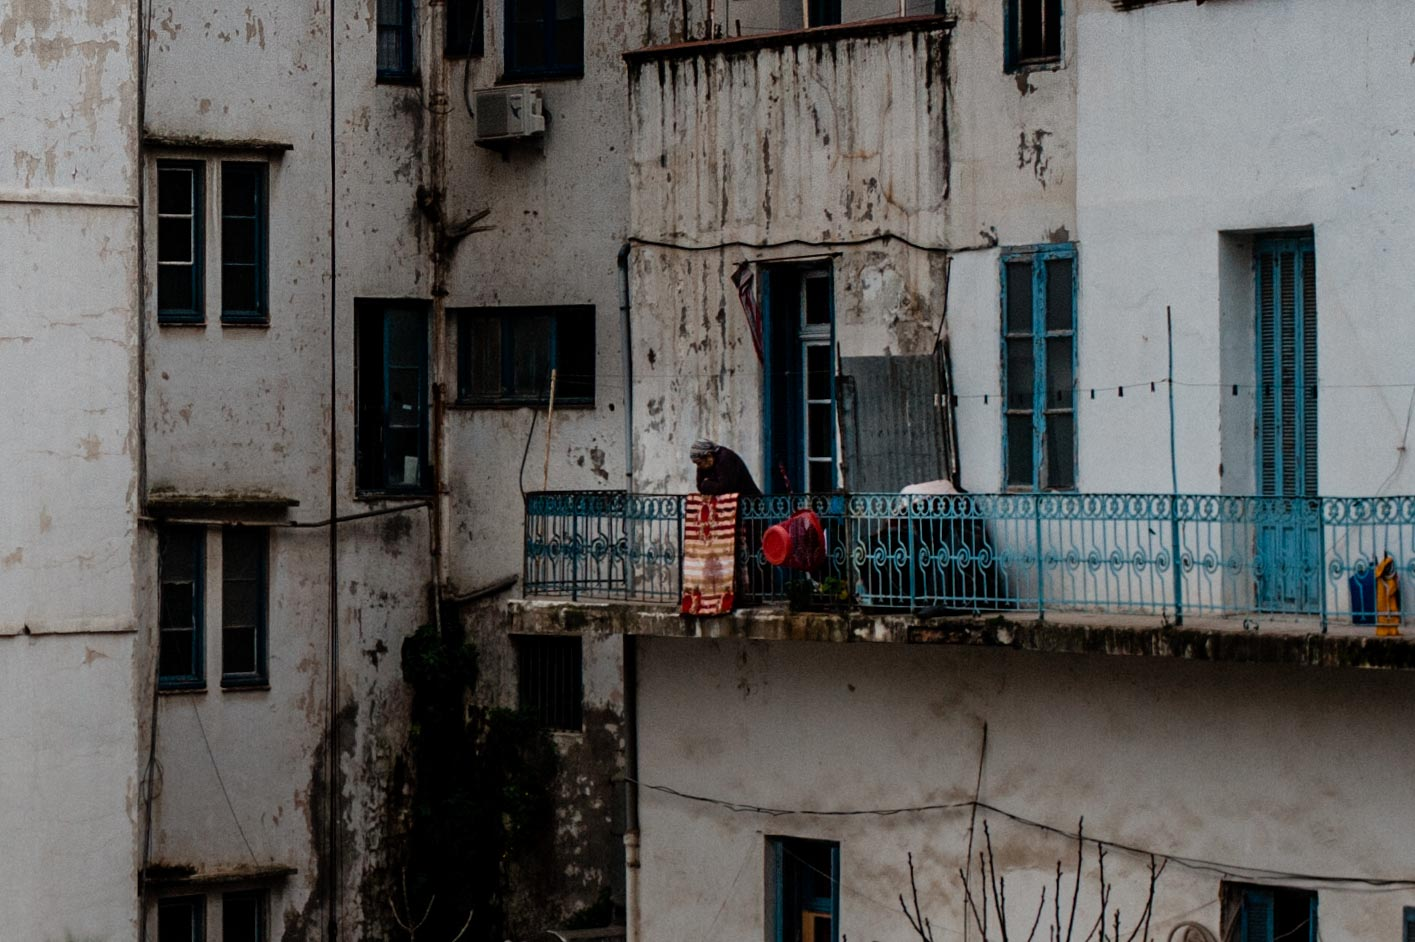 In the streets of Algiers 16